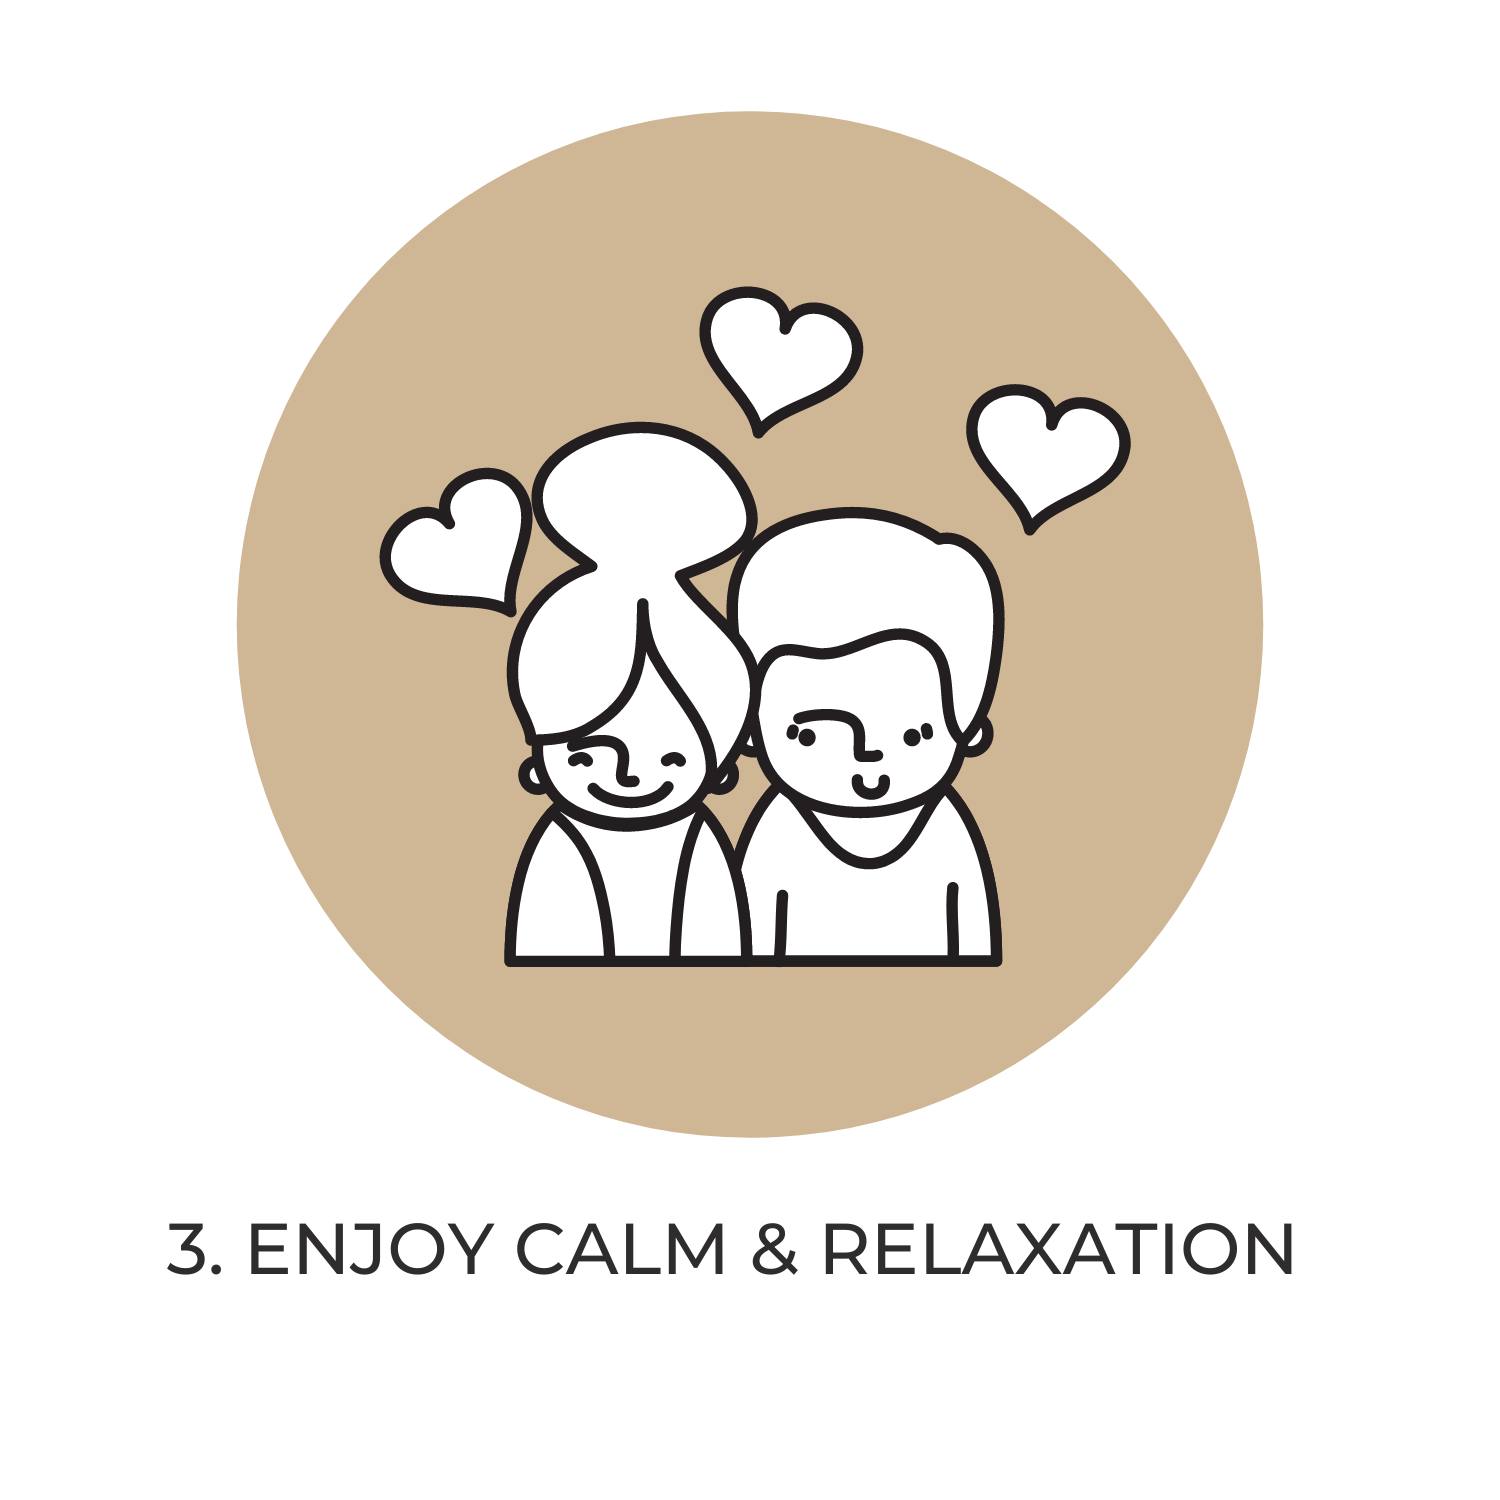 Enjoy calm & relaxation